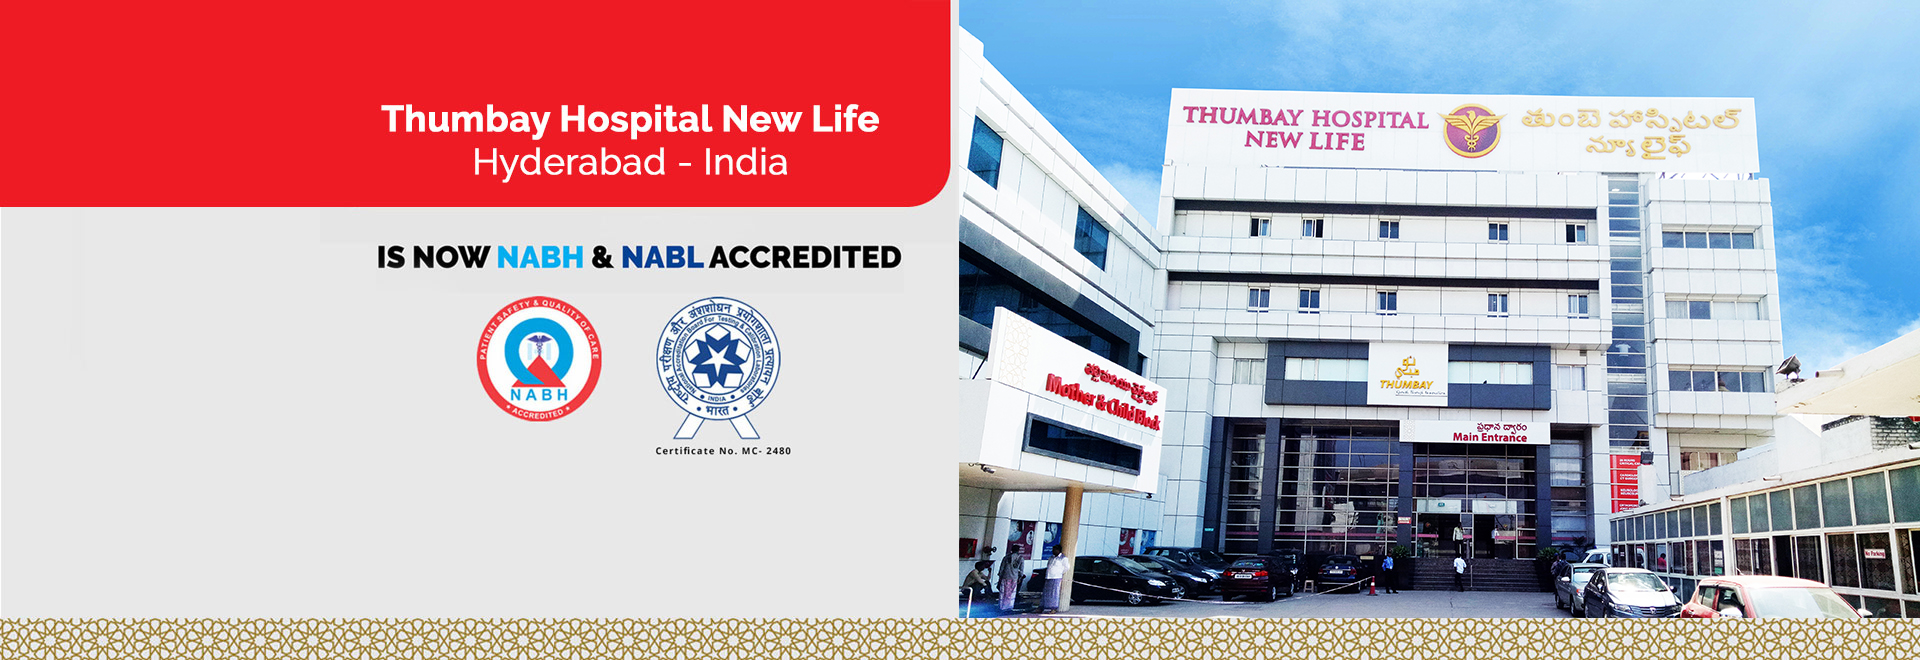 Thumbay Hospital Buliding